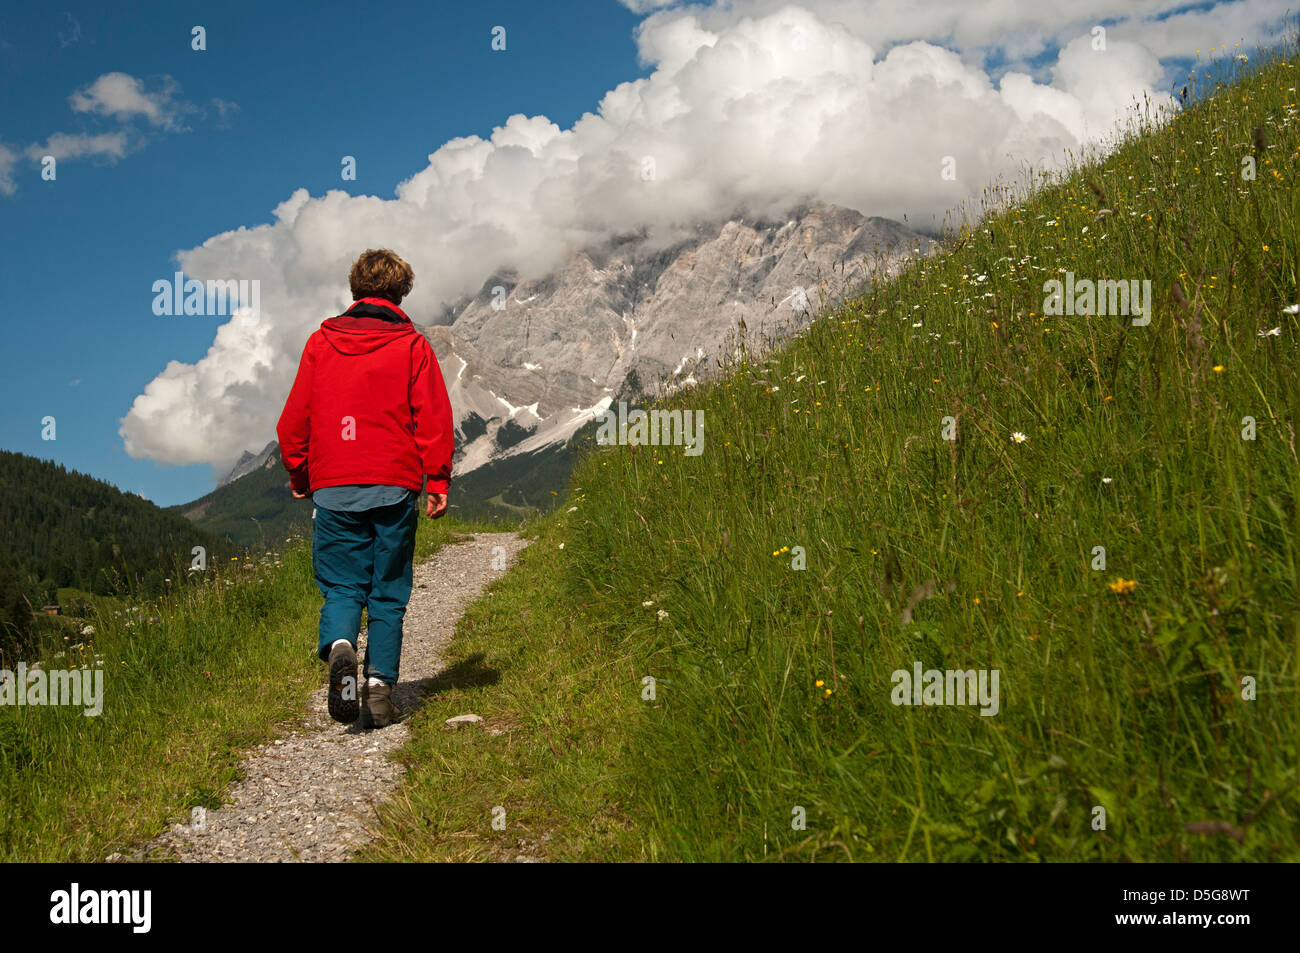 Hiker on a trail in the hiking area Ehrwalder Becken, view at the Wetterstein Mountains, Ehrwald, Tyrol, Austria - Stock Image